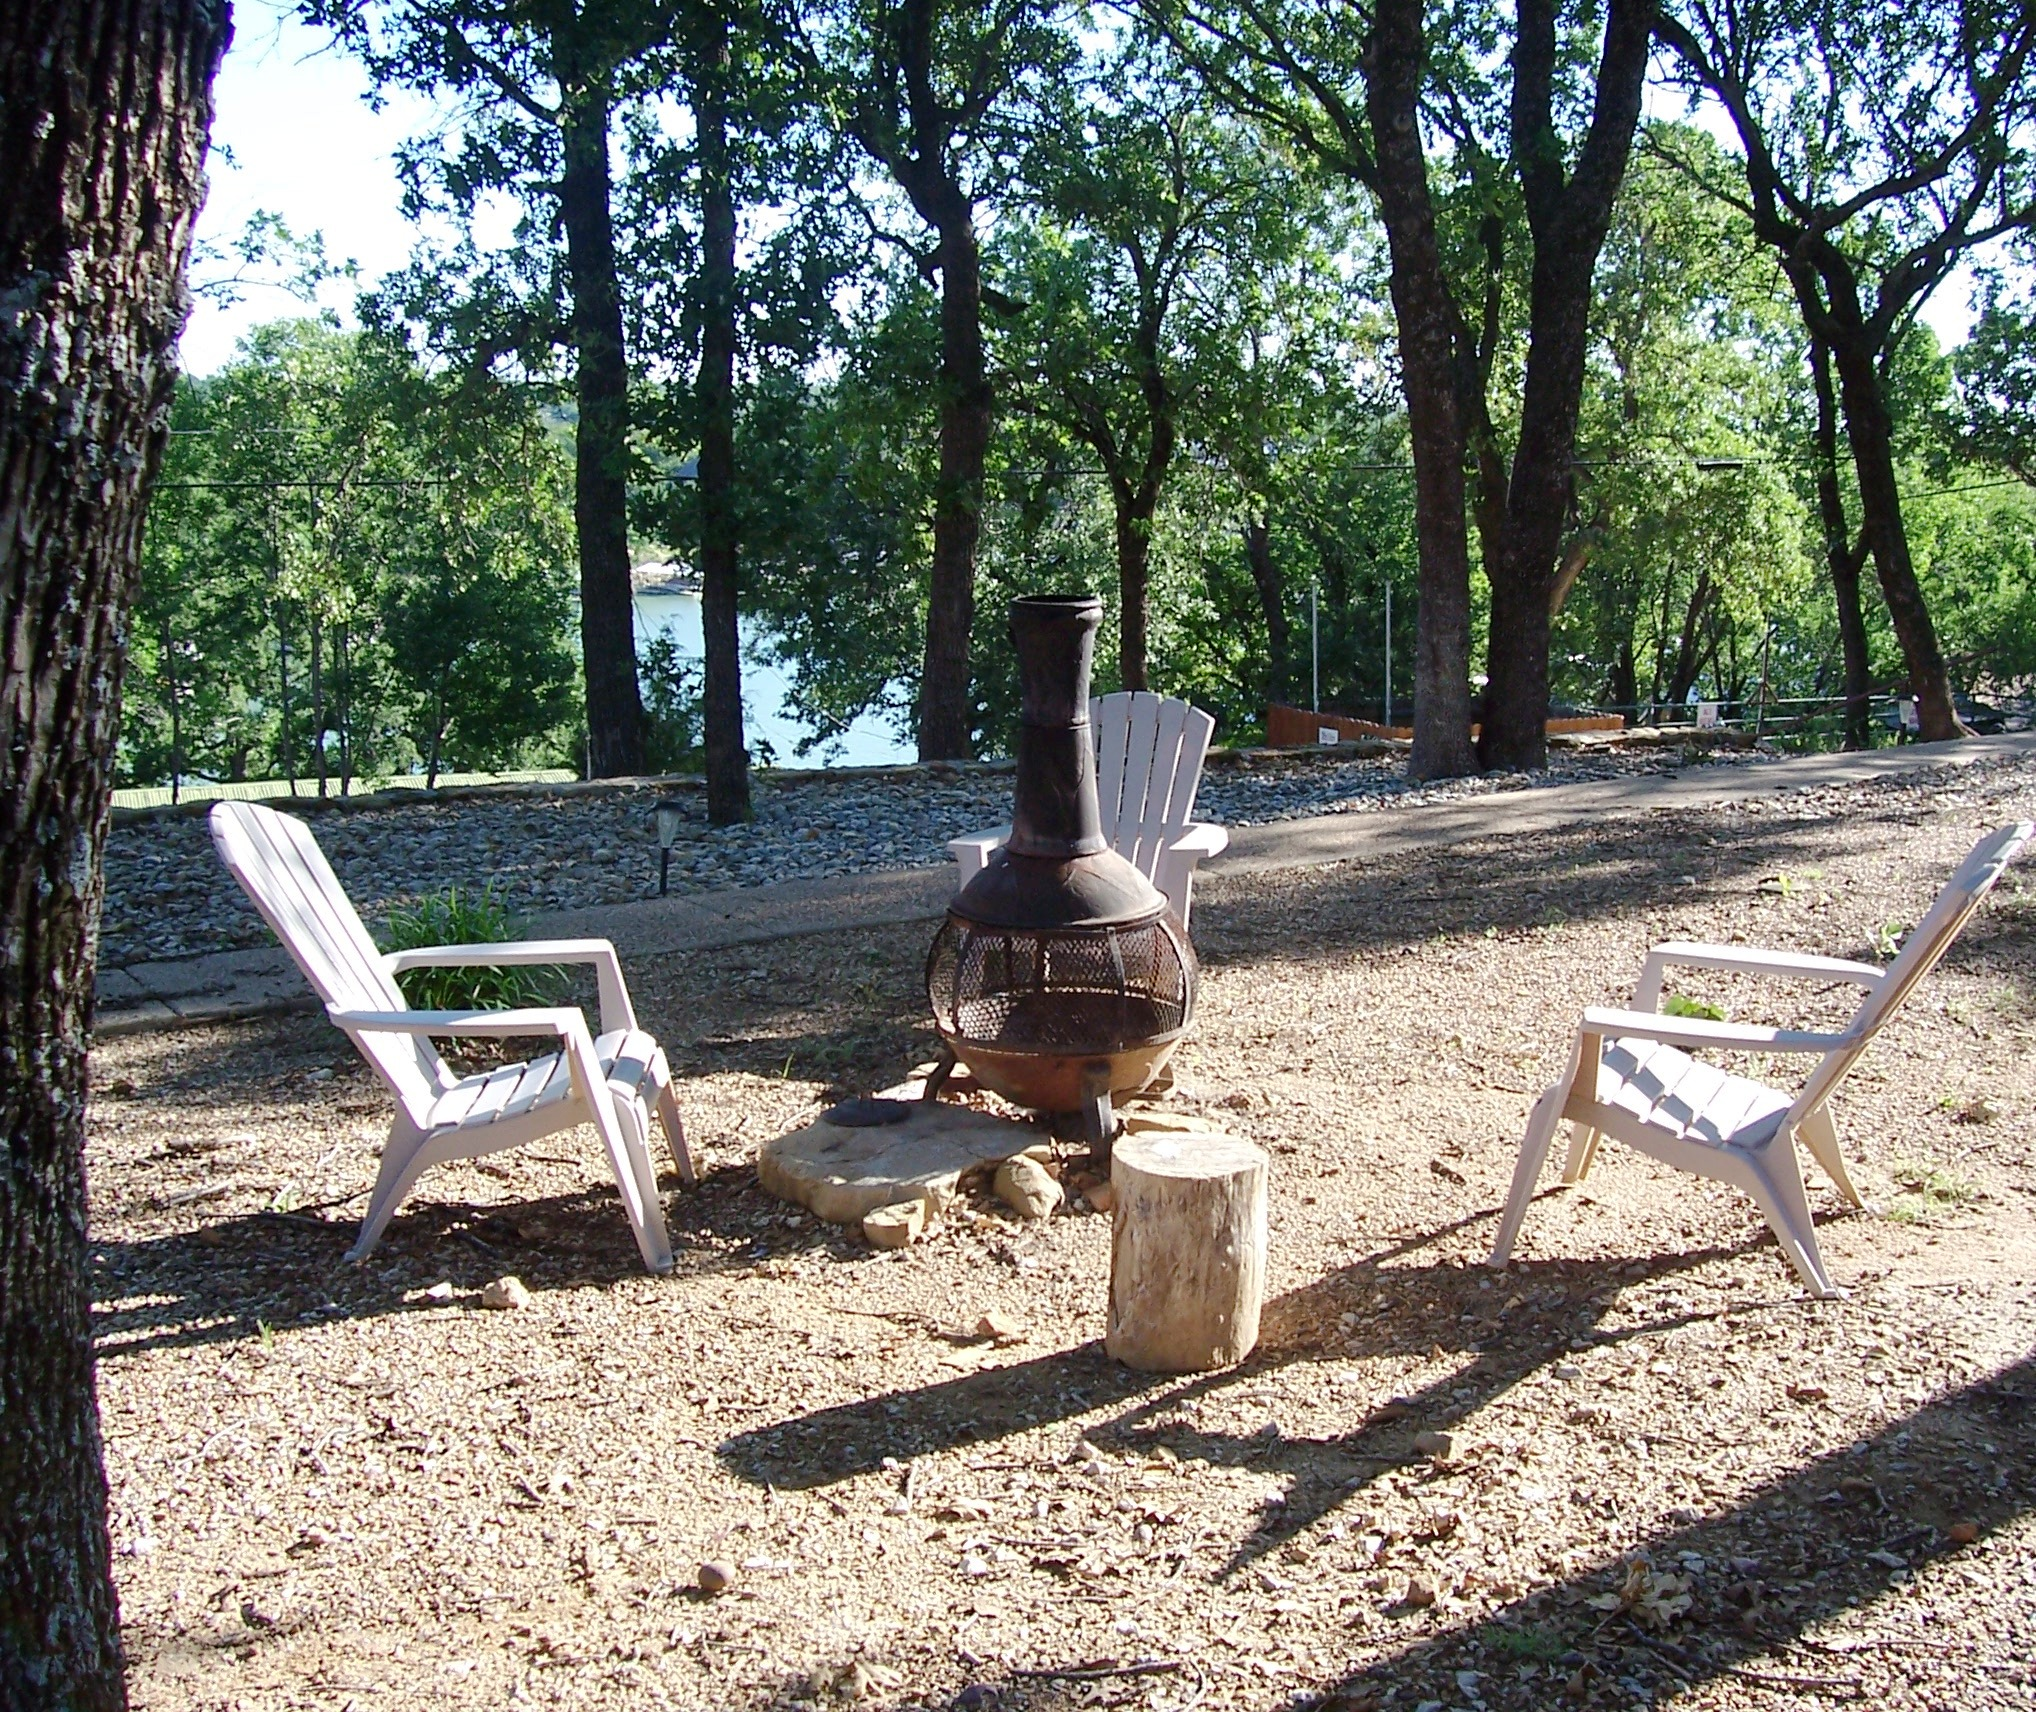 Firepit and BBQ area